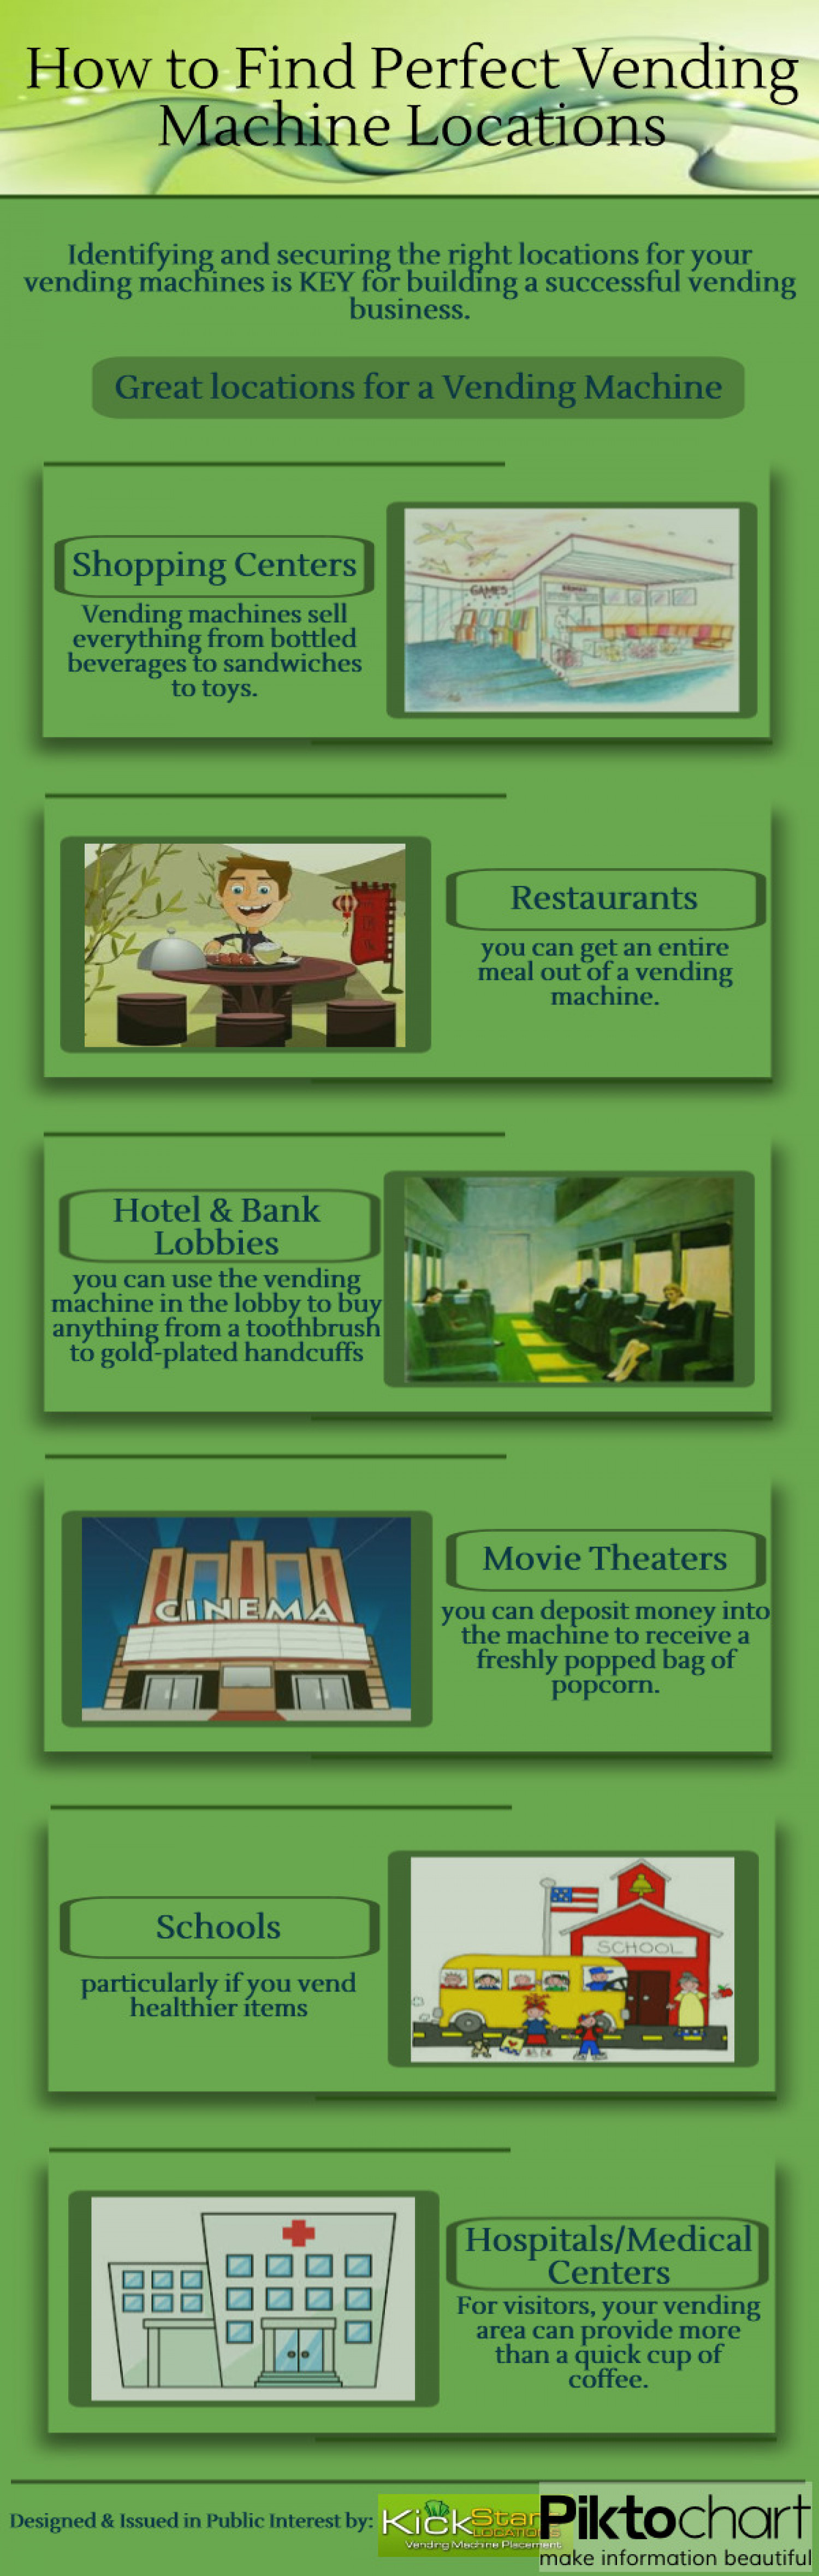 How to Find Perfect Vending Machine Locations Infographic